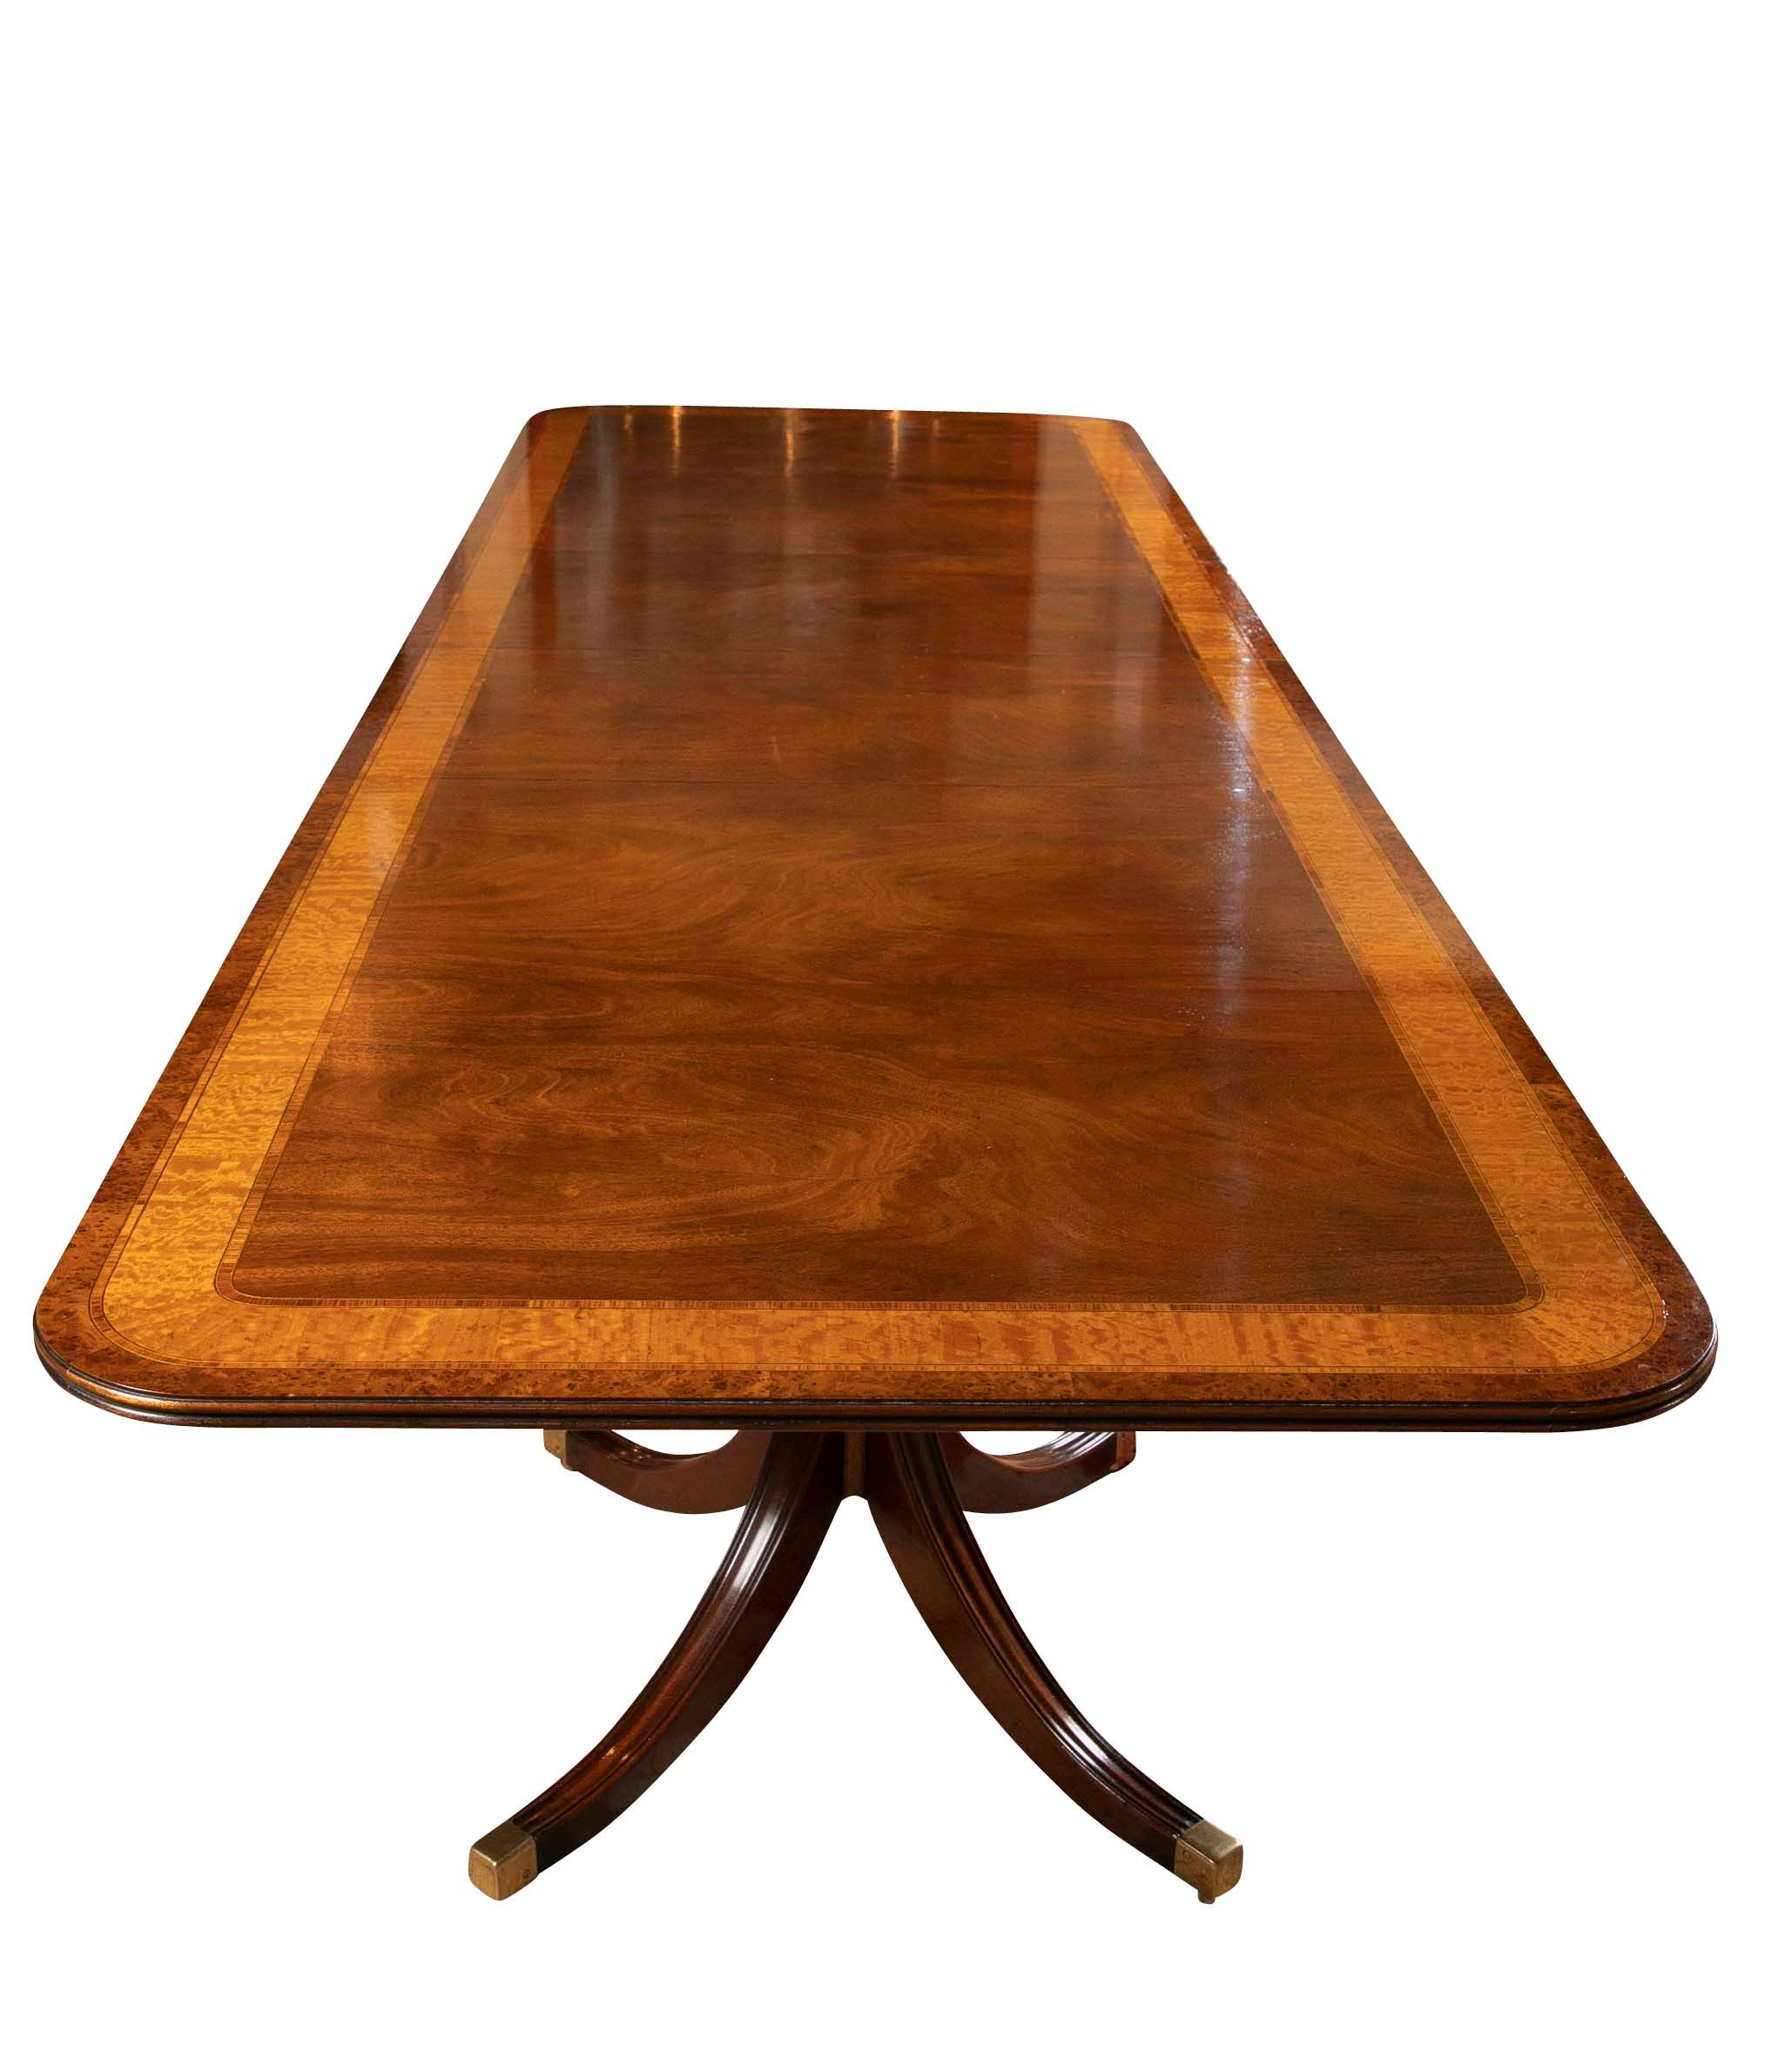 Sheraton Style Double Pedestal Mahogany Dining Table with Satinwood Banding